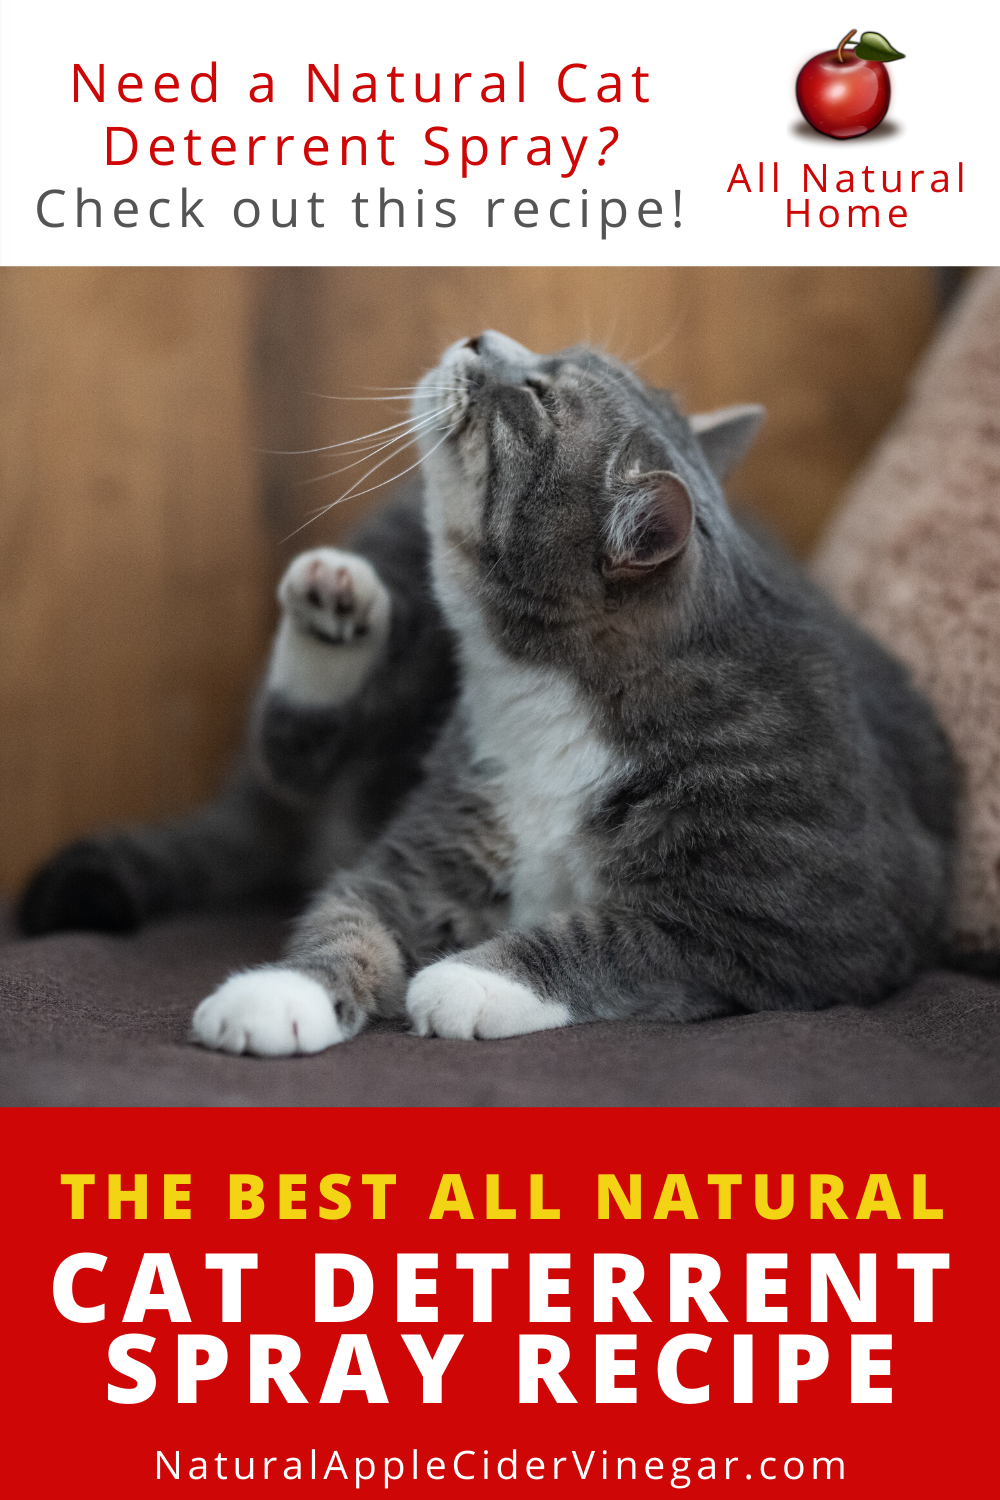 The Best All Natural Cat Deterrent Spray Recipe All Natural Home